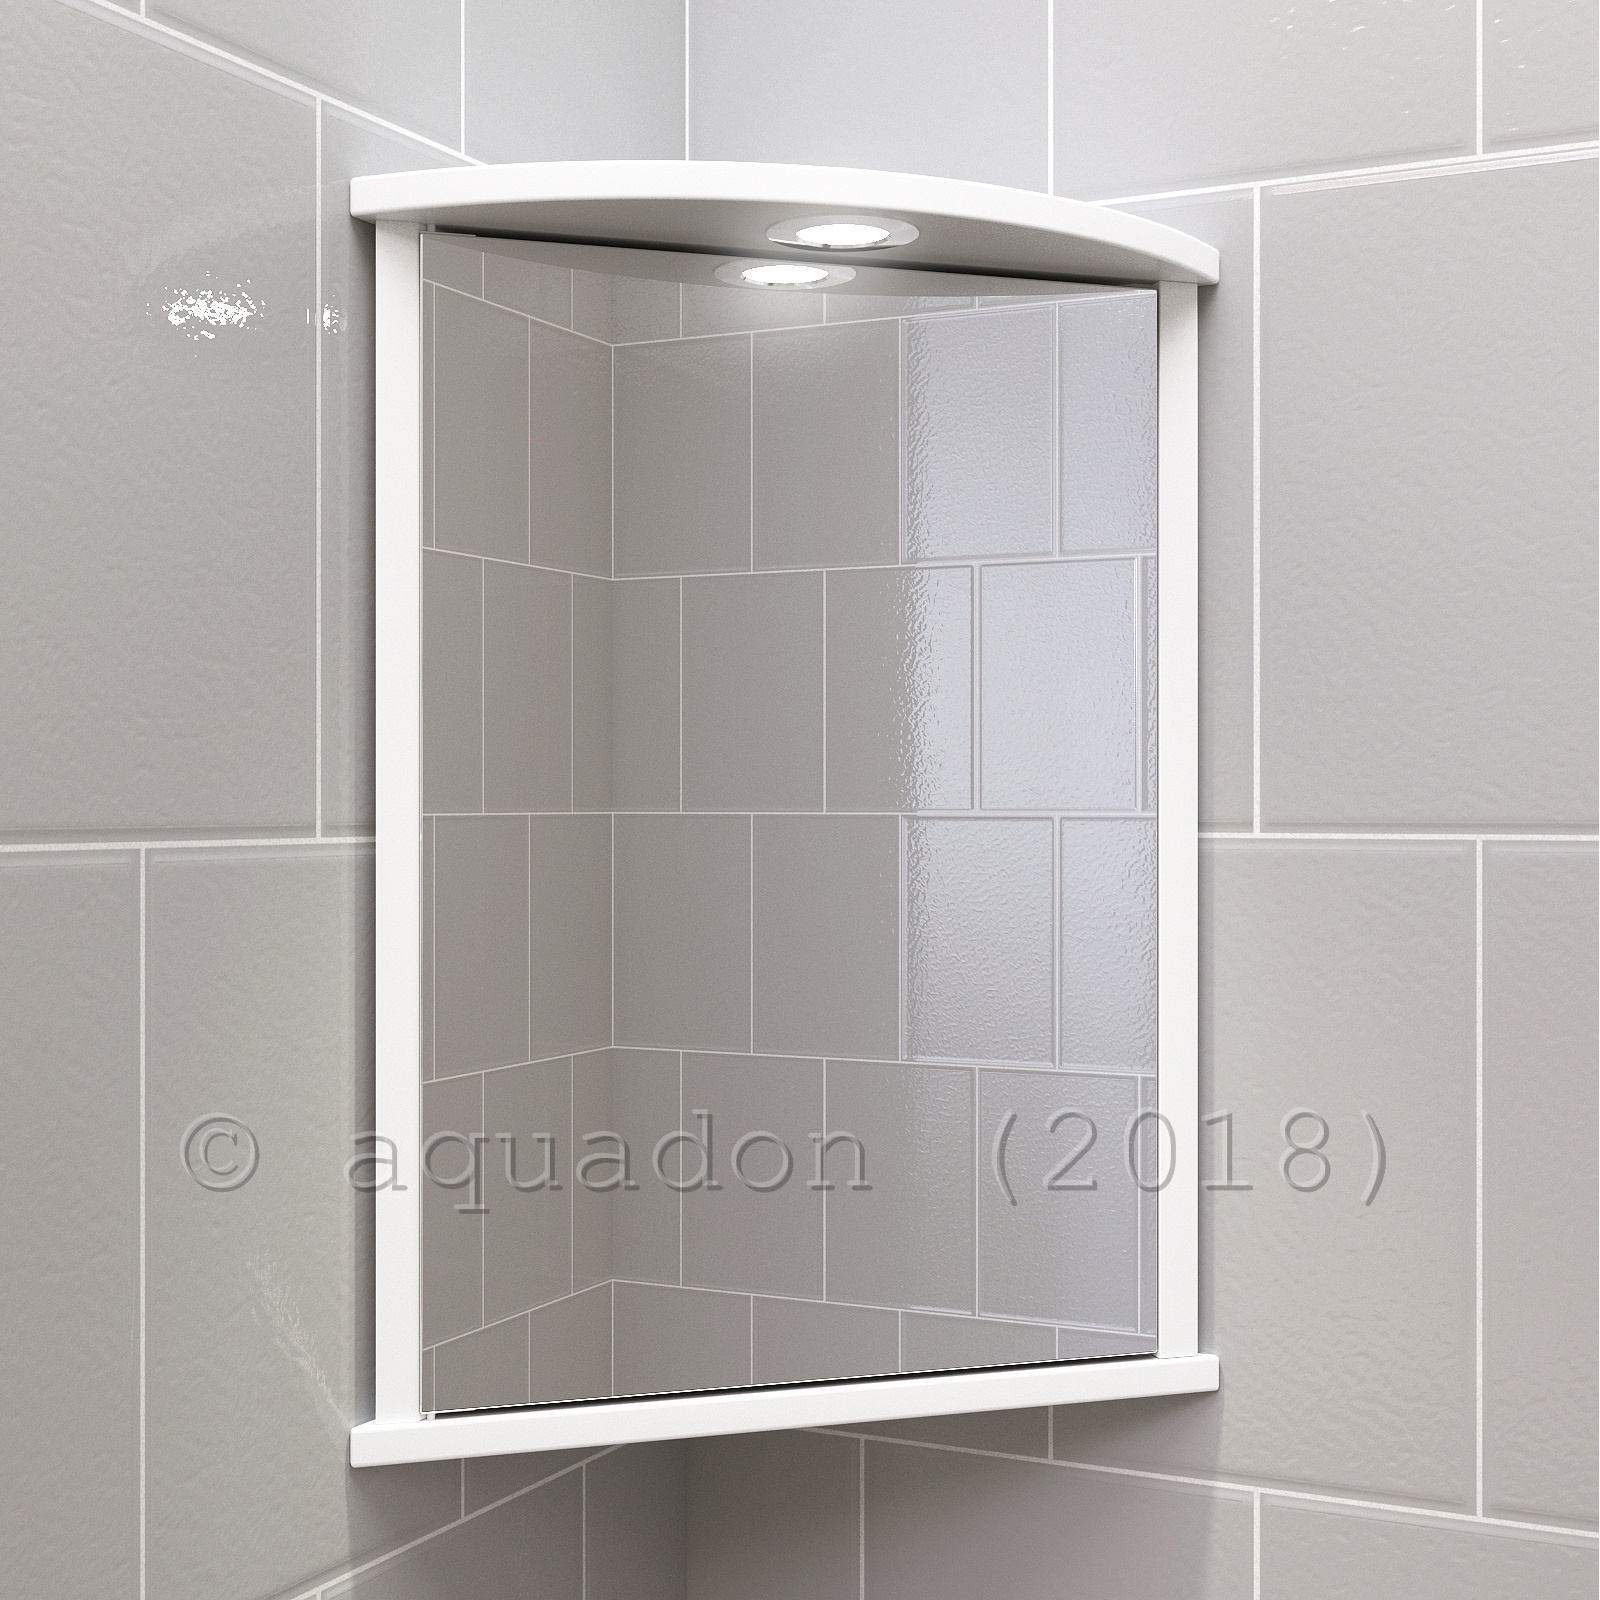 Bathroom Wall Corner Mirror Cabinet White Single Door Ebay